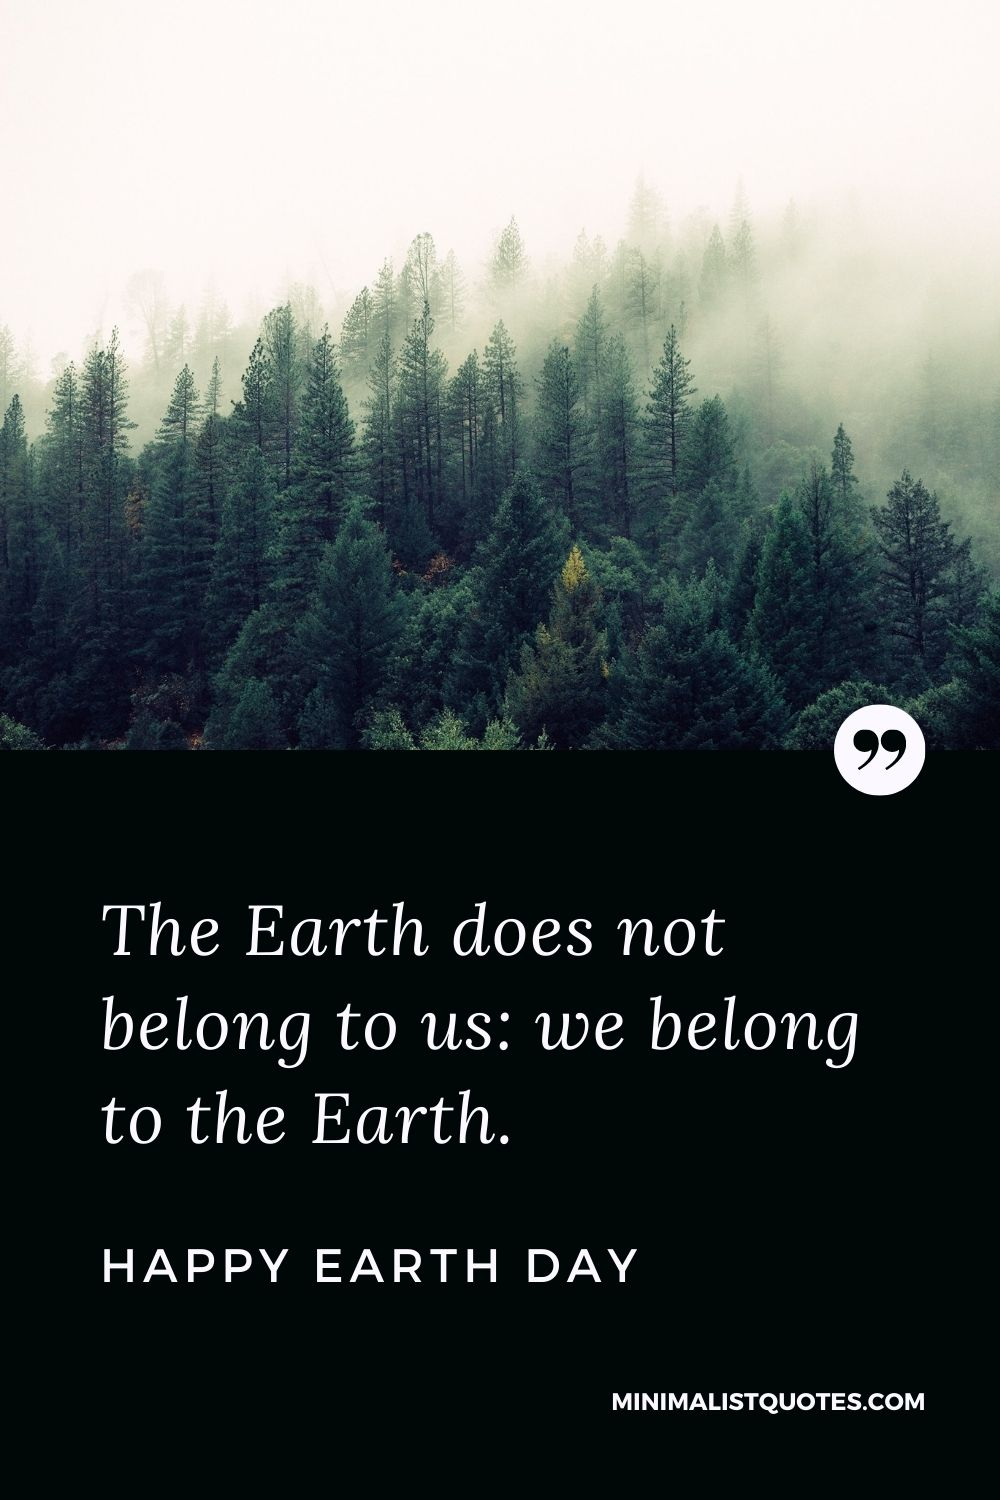 Earth Day Wish, Quote & Message with Image: The Earth does not belong to us: we belong to the Earth. Happy Earth Day!